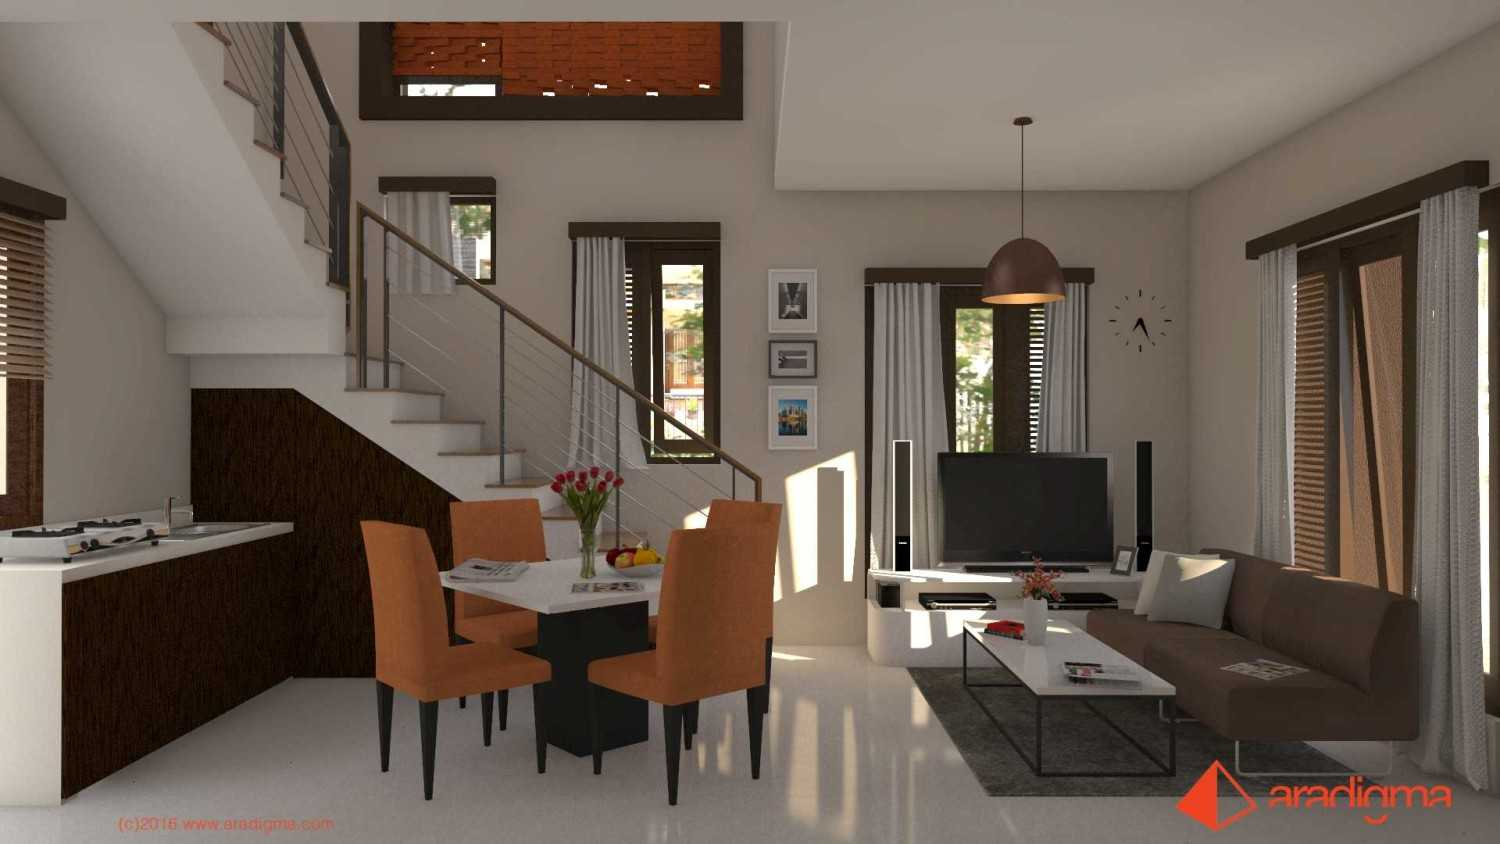 Aradigma Rumah Bima Malang Malang Living And Dining Room Tropis,minimalis,kontemporer 20105